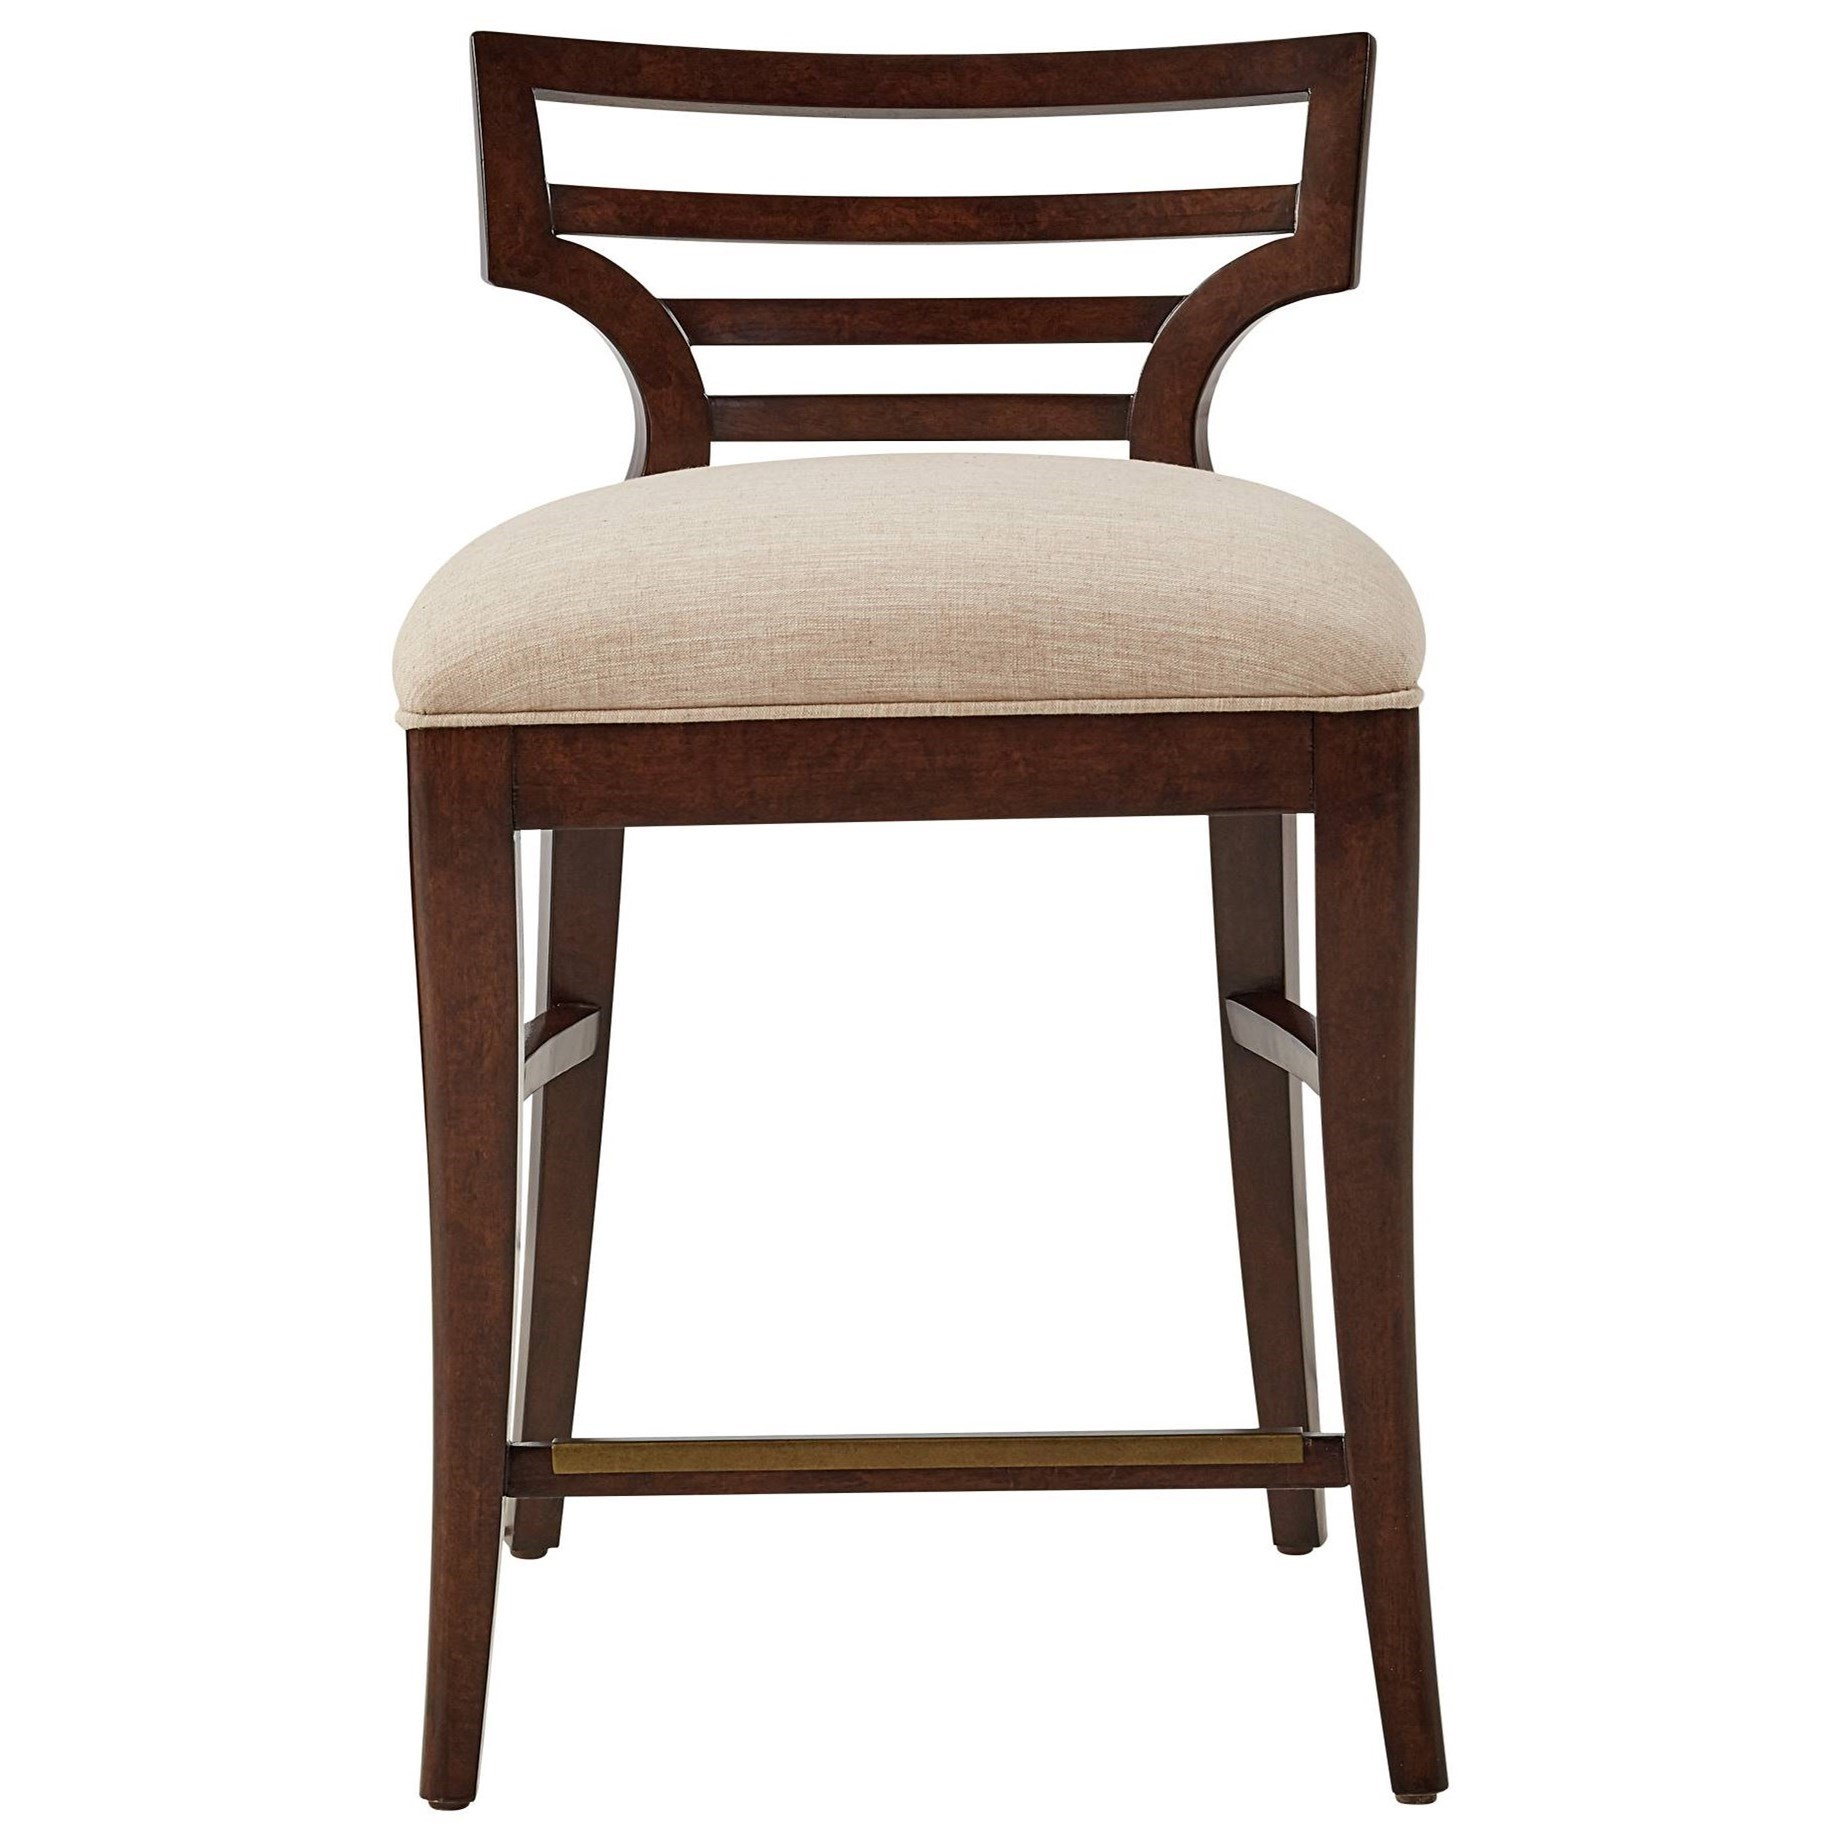 Stanley Furniture Virage Counter Stool With Upholstered Seat   Becker  Furniture World   Bar Stools